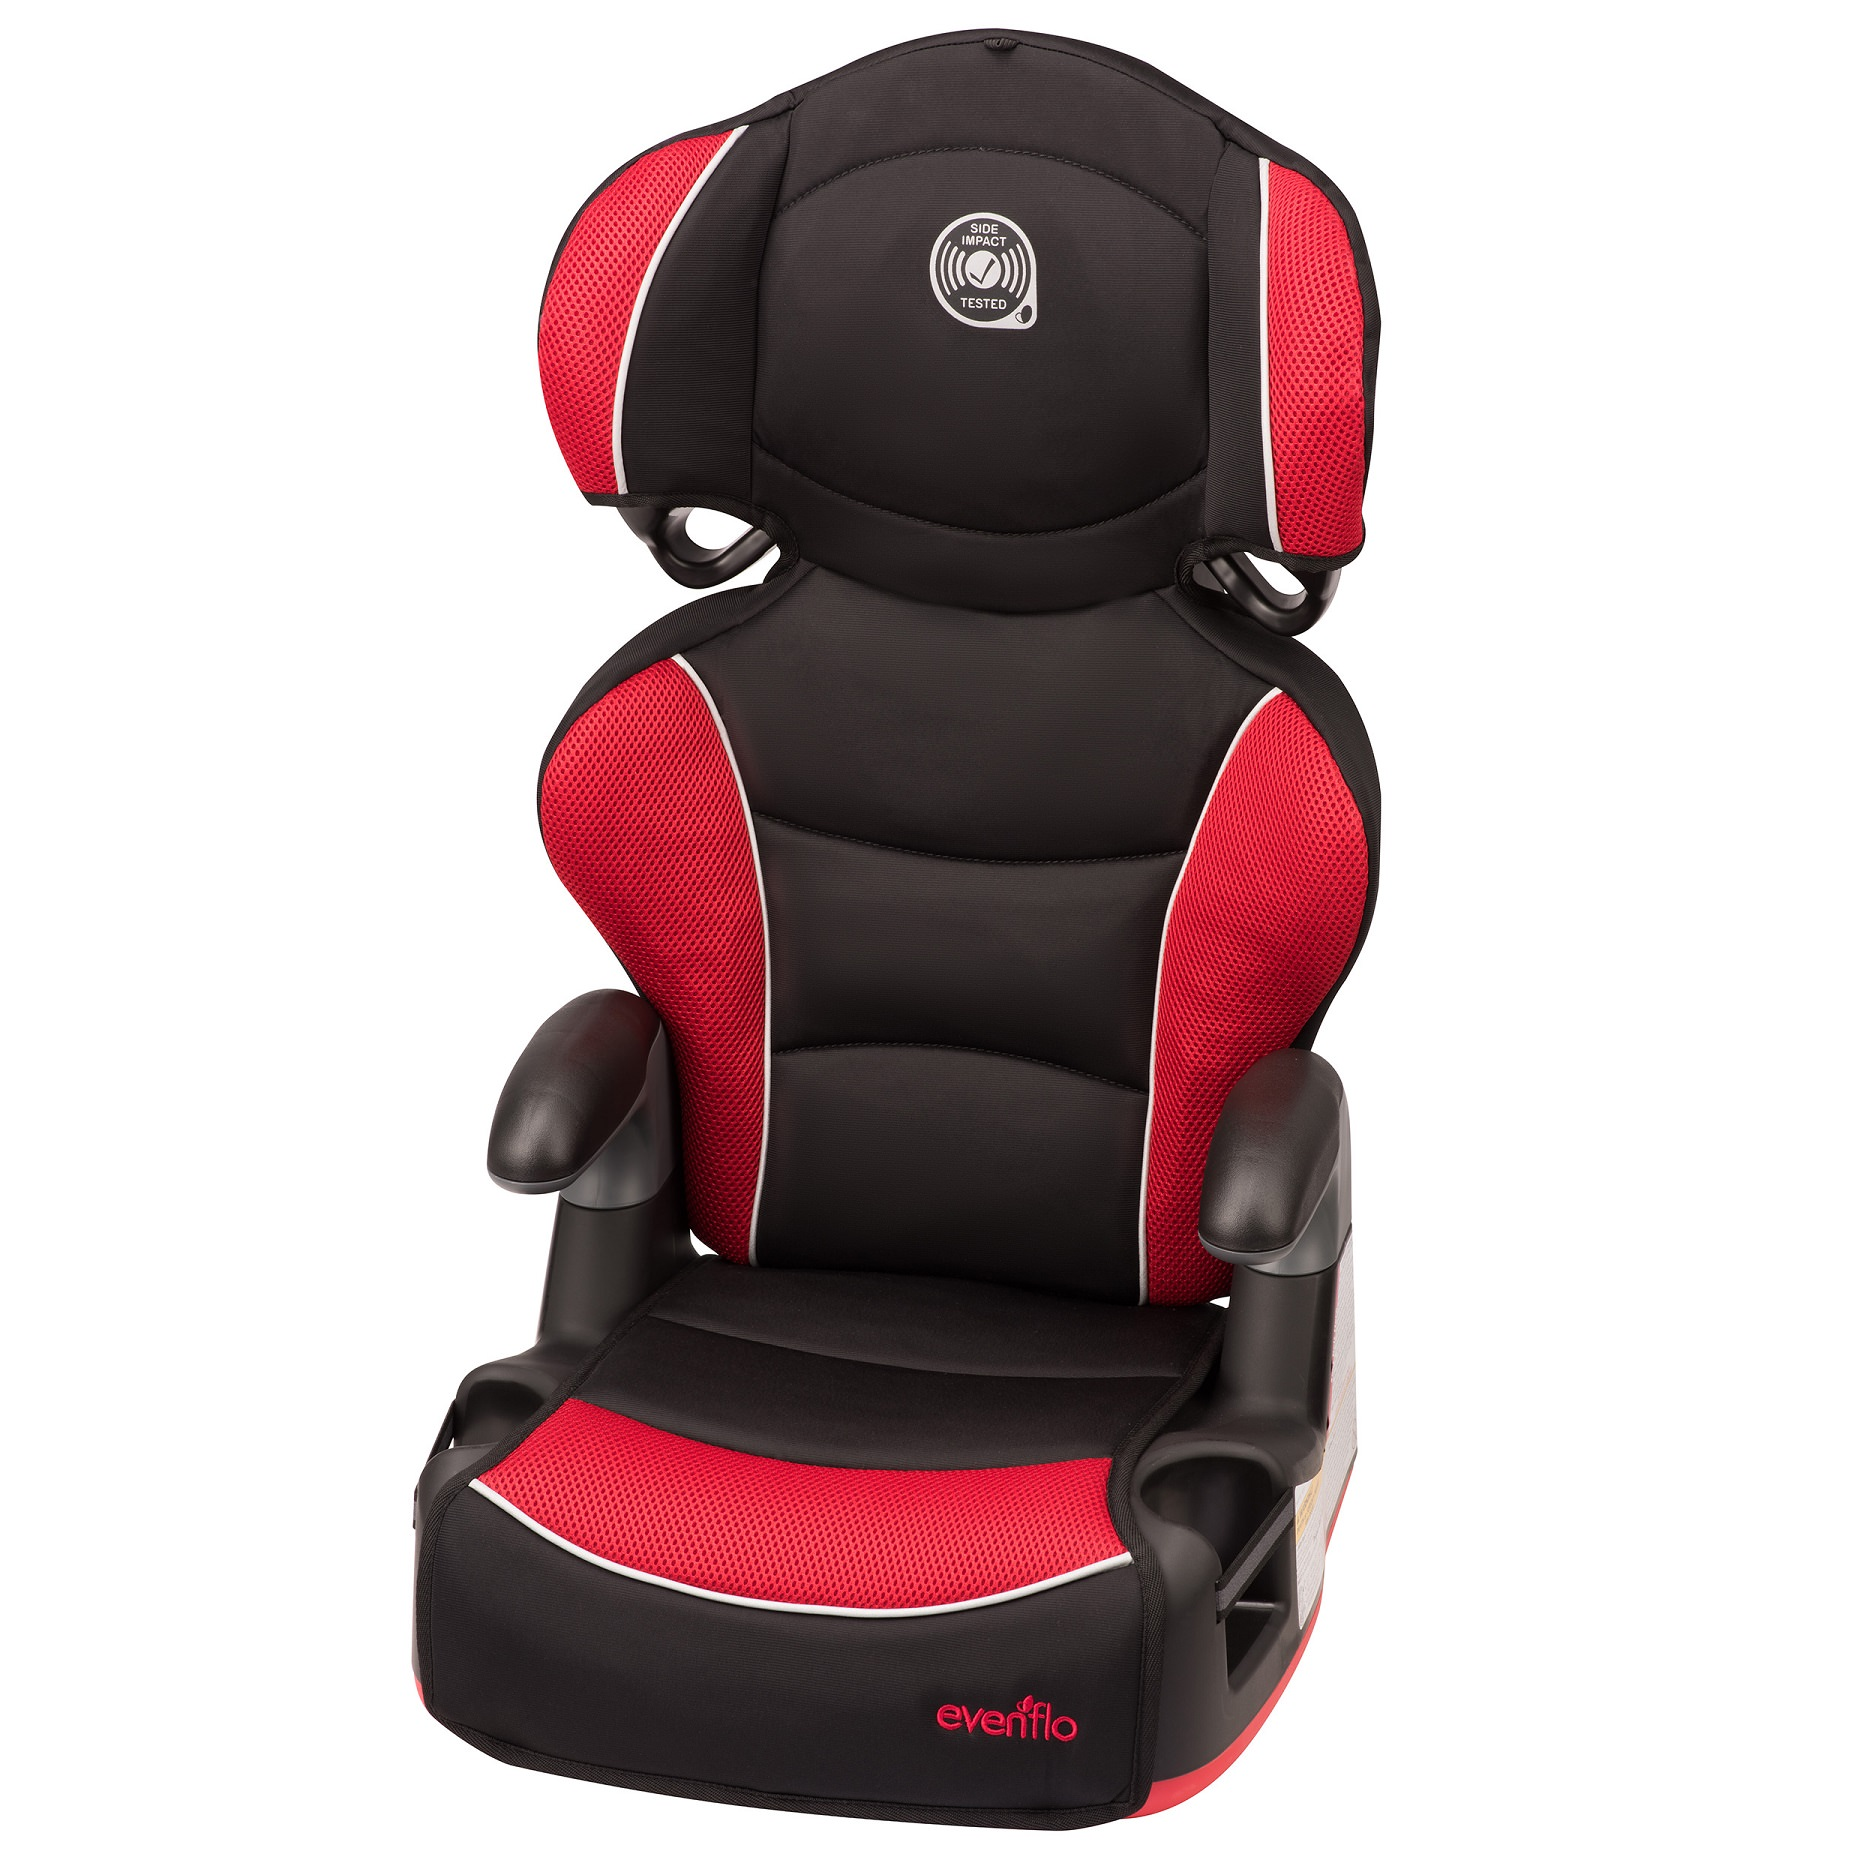 Evenflo Big Kid Amp High Back Booster Car Seat, Heatwave